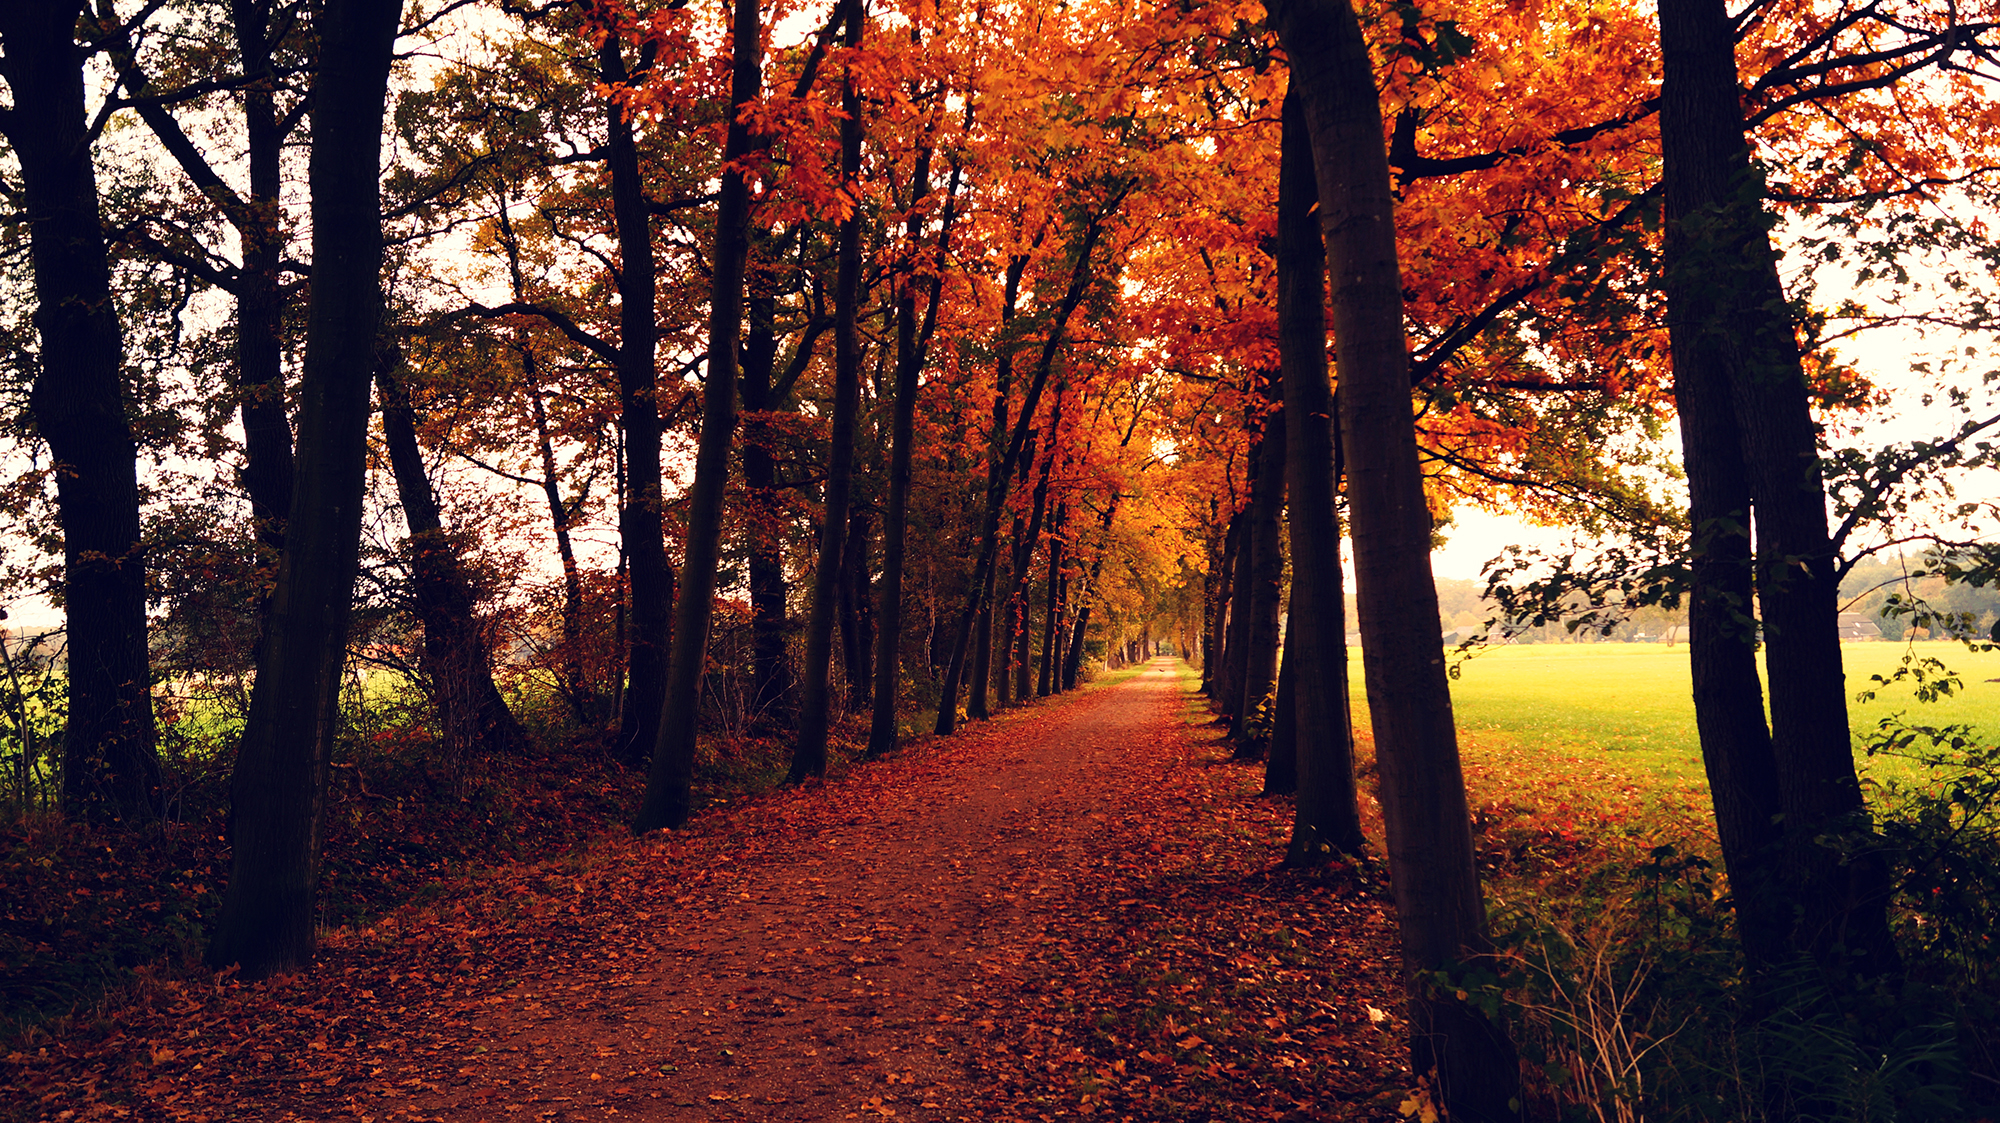 Things to do in Autumn in Milton Keynes